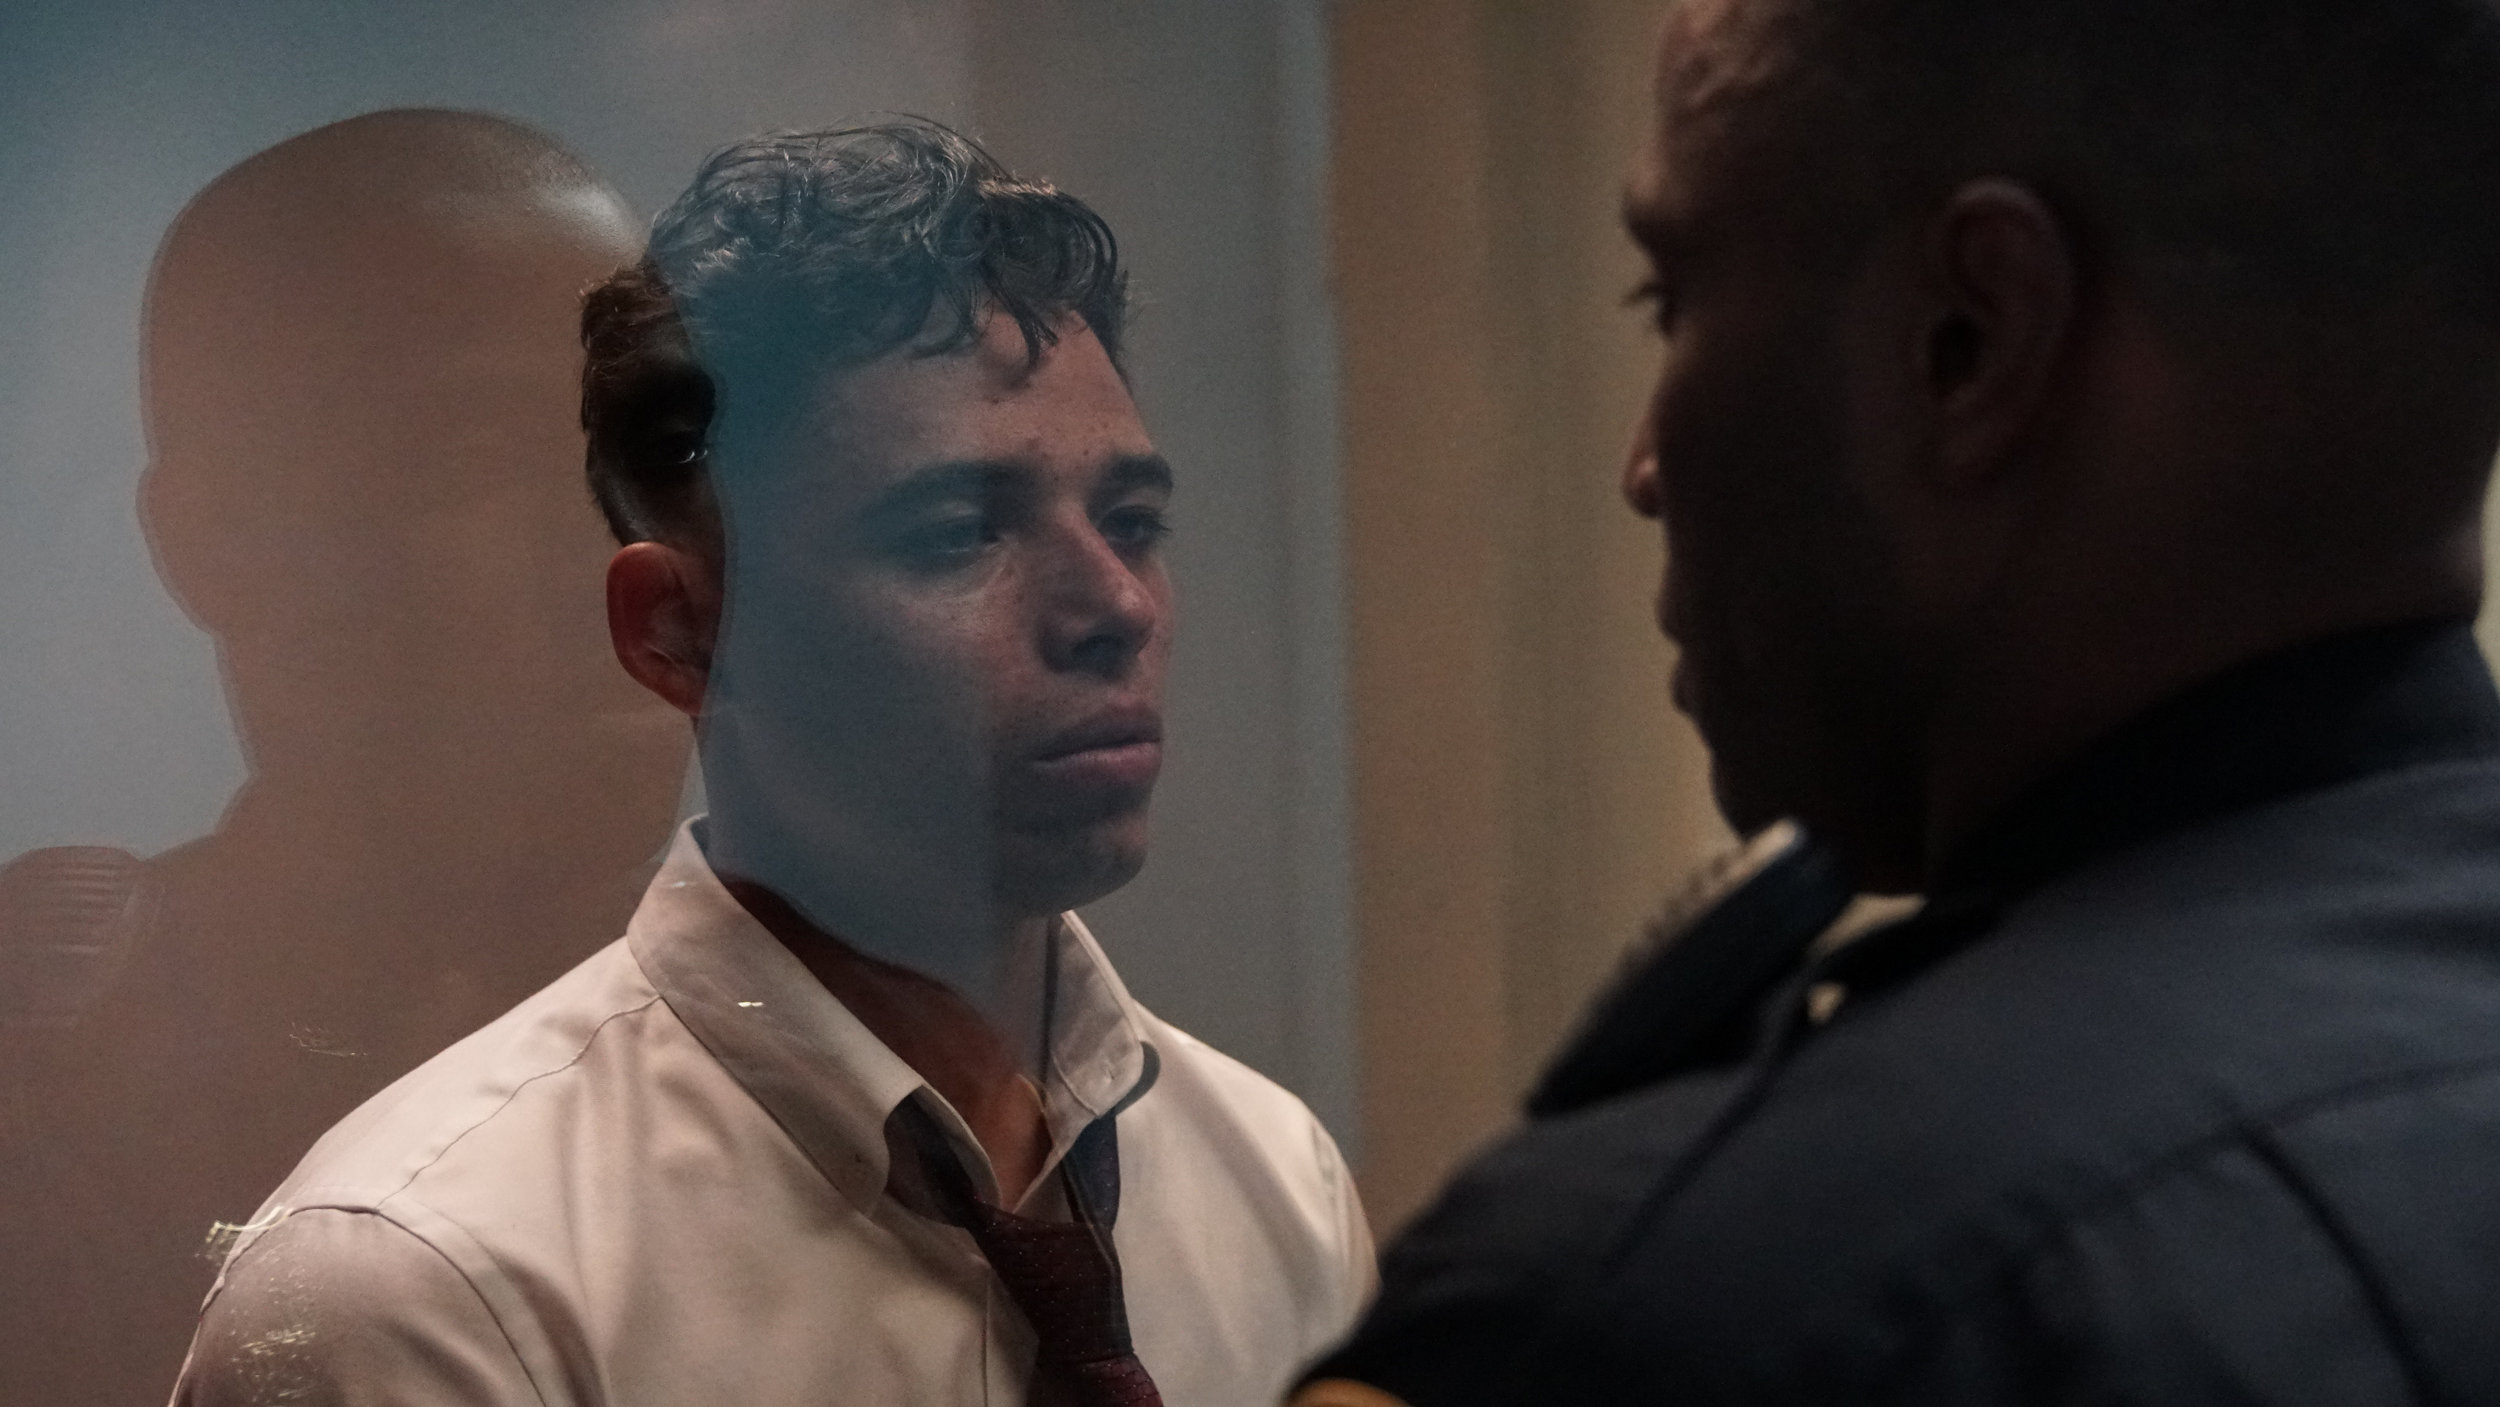 """Manny (Anthony Ramos, left), a young father who took video of a police shooting, finds himself in an interrogation room, being looked over by a policeman, Dennis (John David Washington), in a scene from the drama """"Monsters and Men."""" (Photo courtesy MoviePass Films / Neon Films)"""